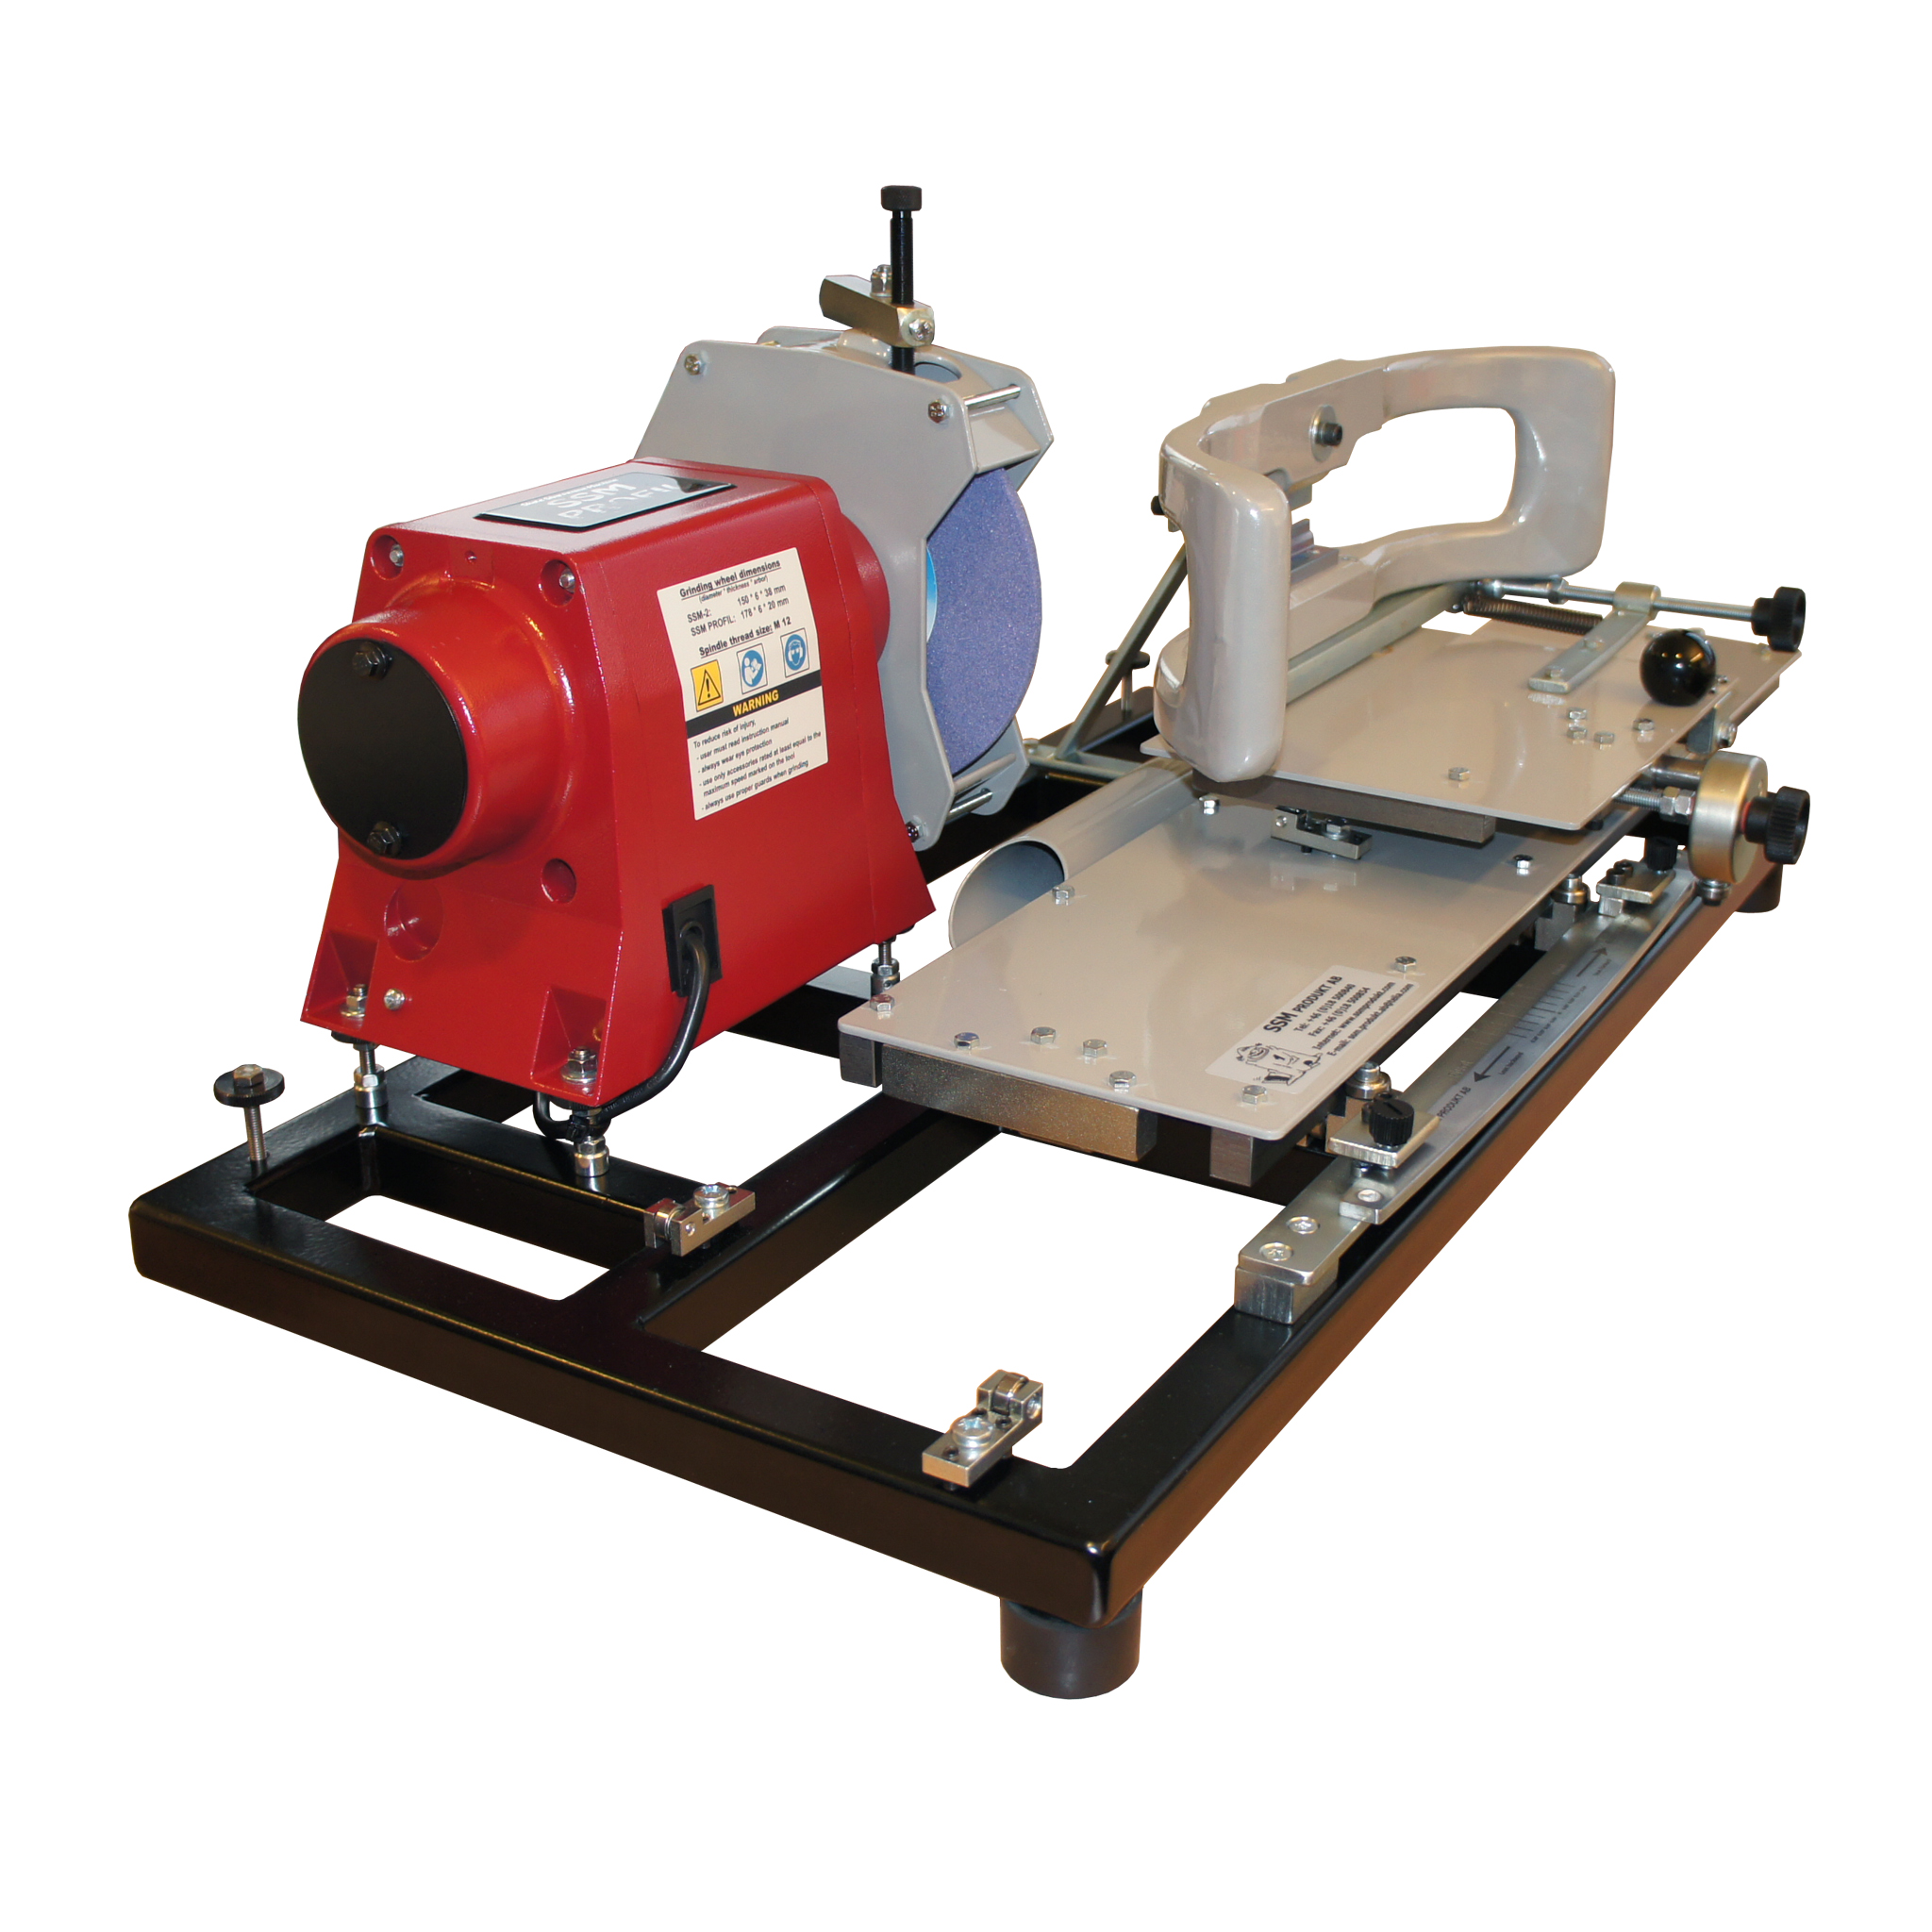 SSM PROFIL skate sharpening machine